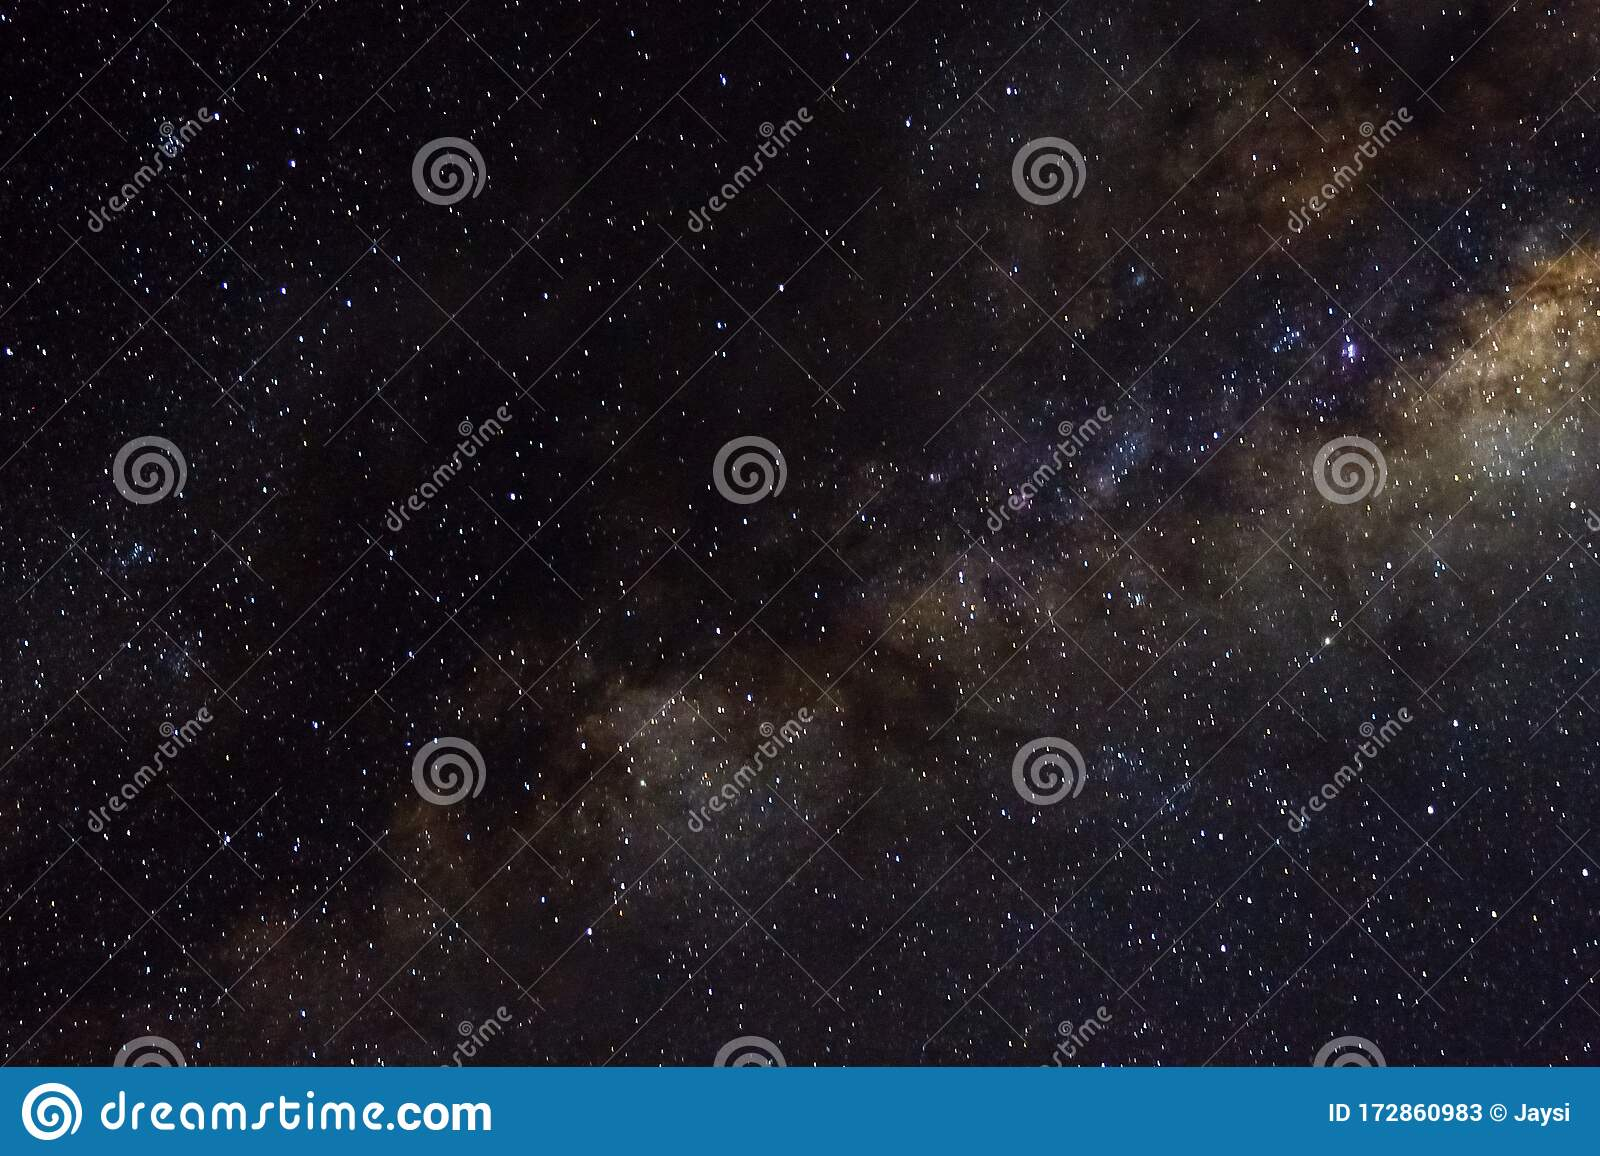 22 637 Black Stars Galaxy Photos Free Royalty Free Stock Photos From Dreamstime